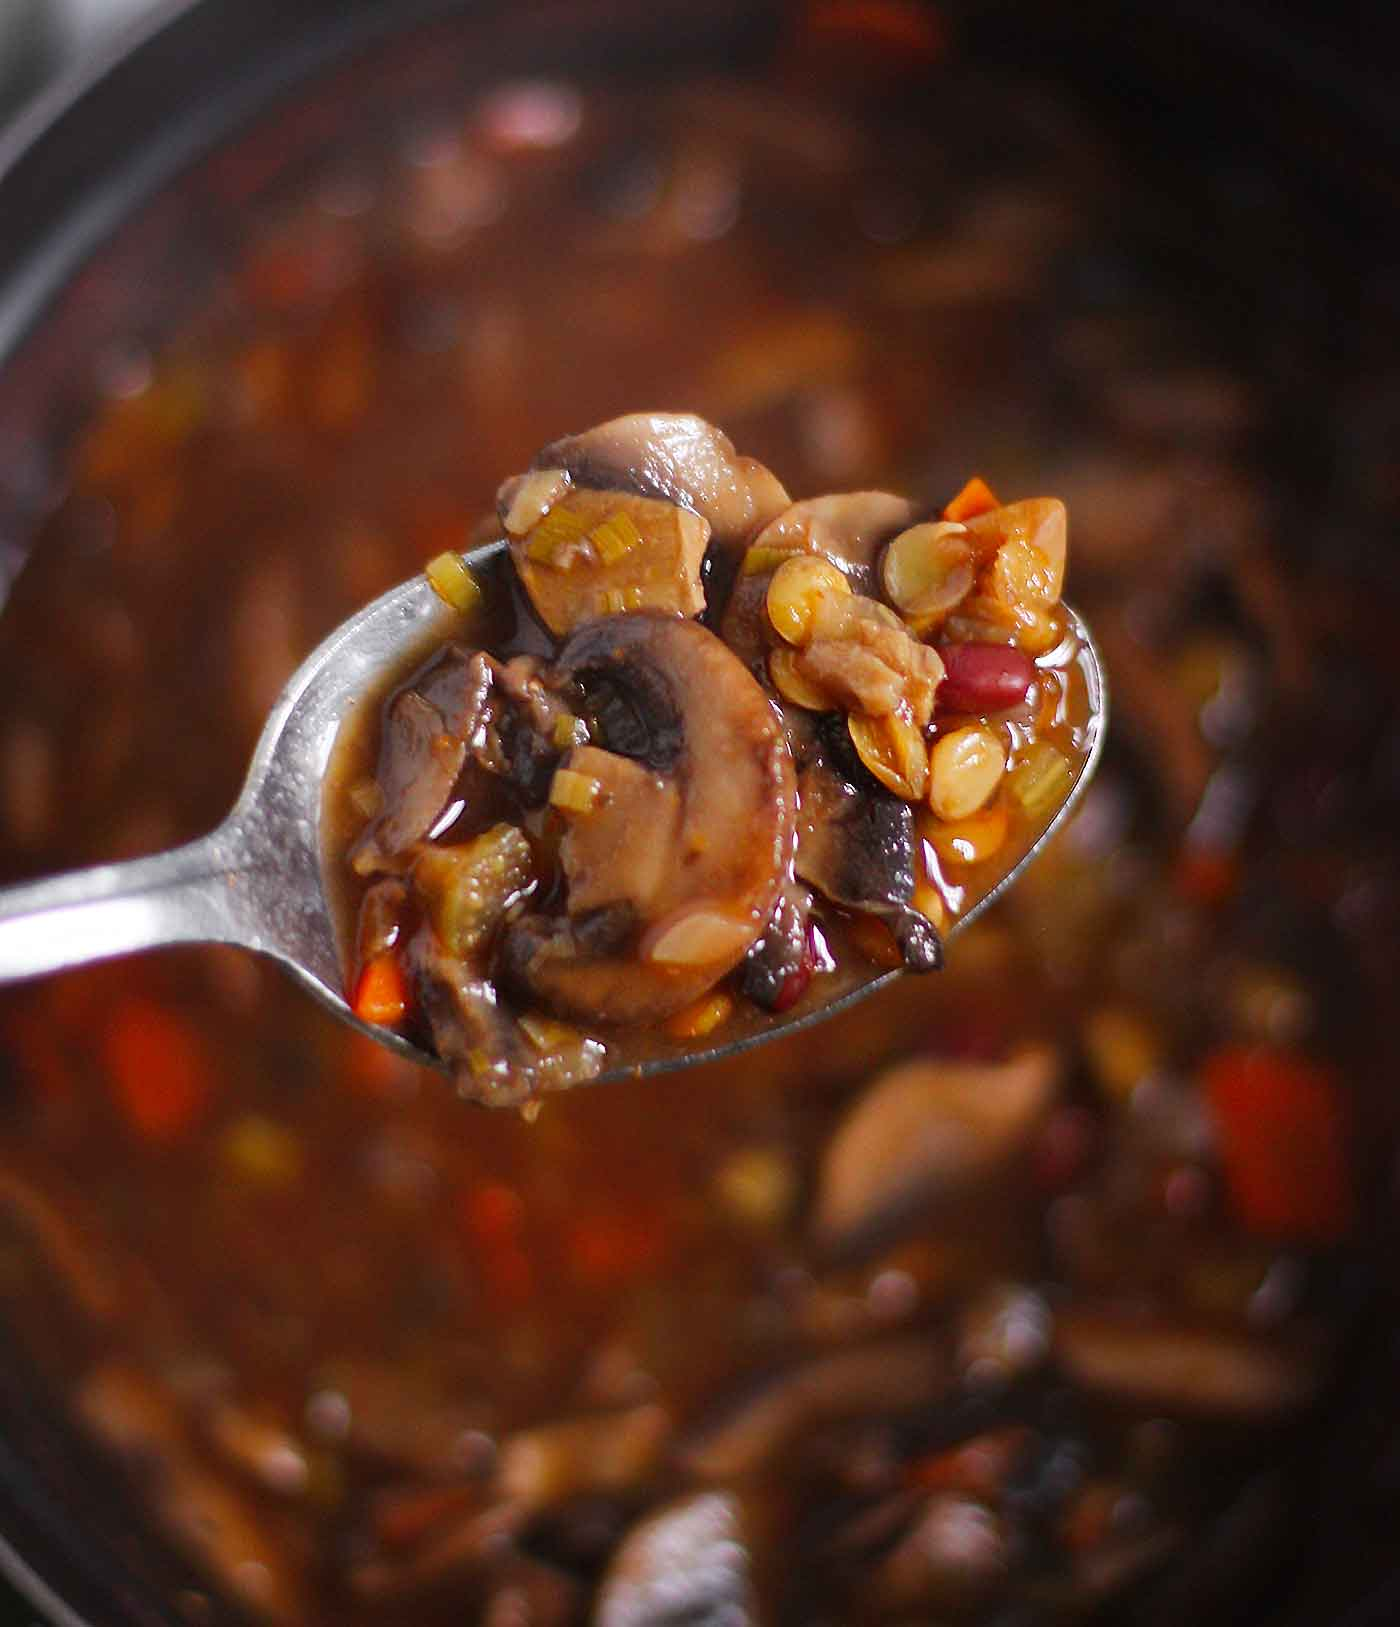 A spoonful of Mushroom Lentil Adzuki Bean Soup